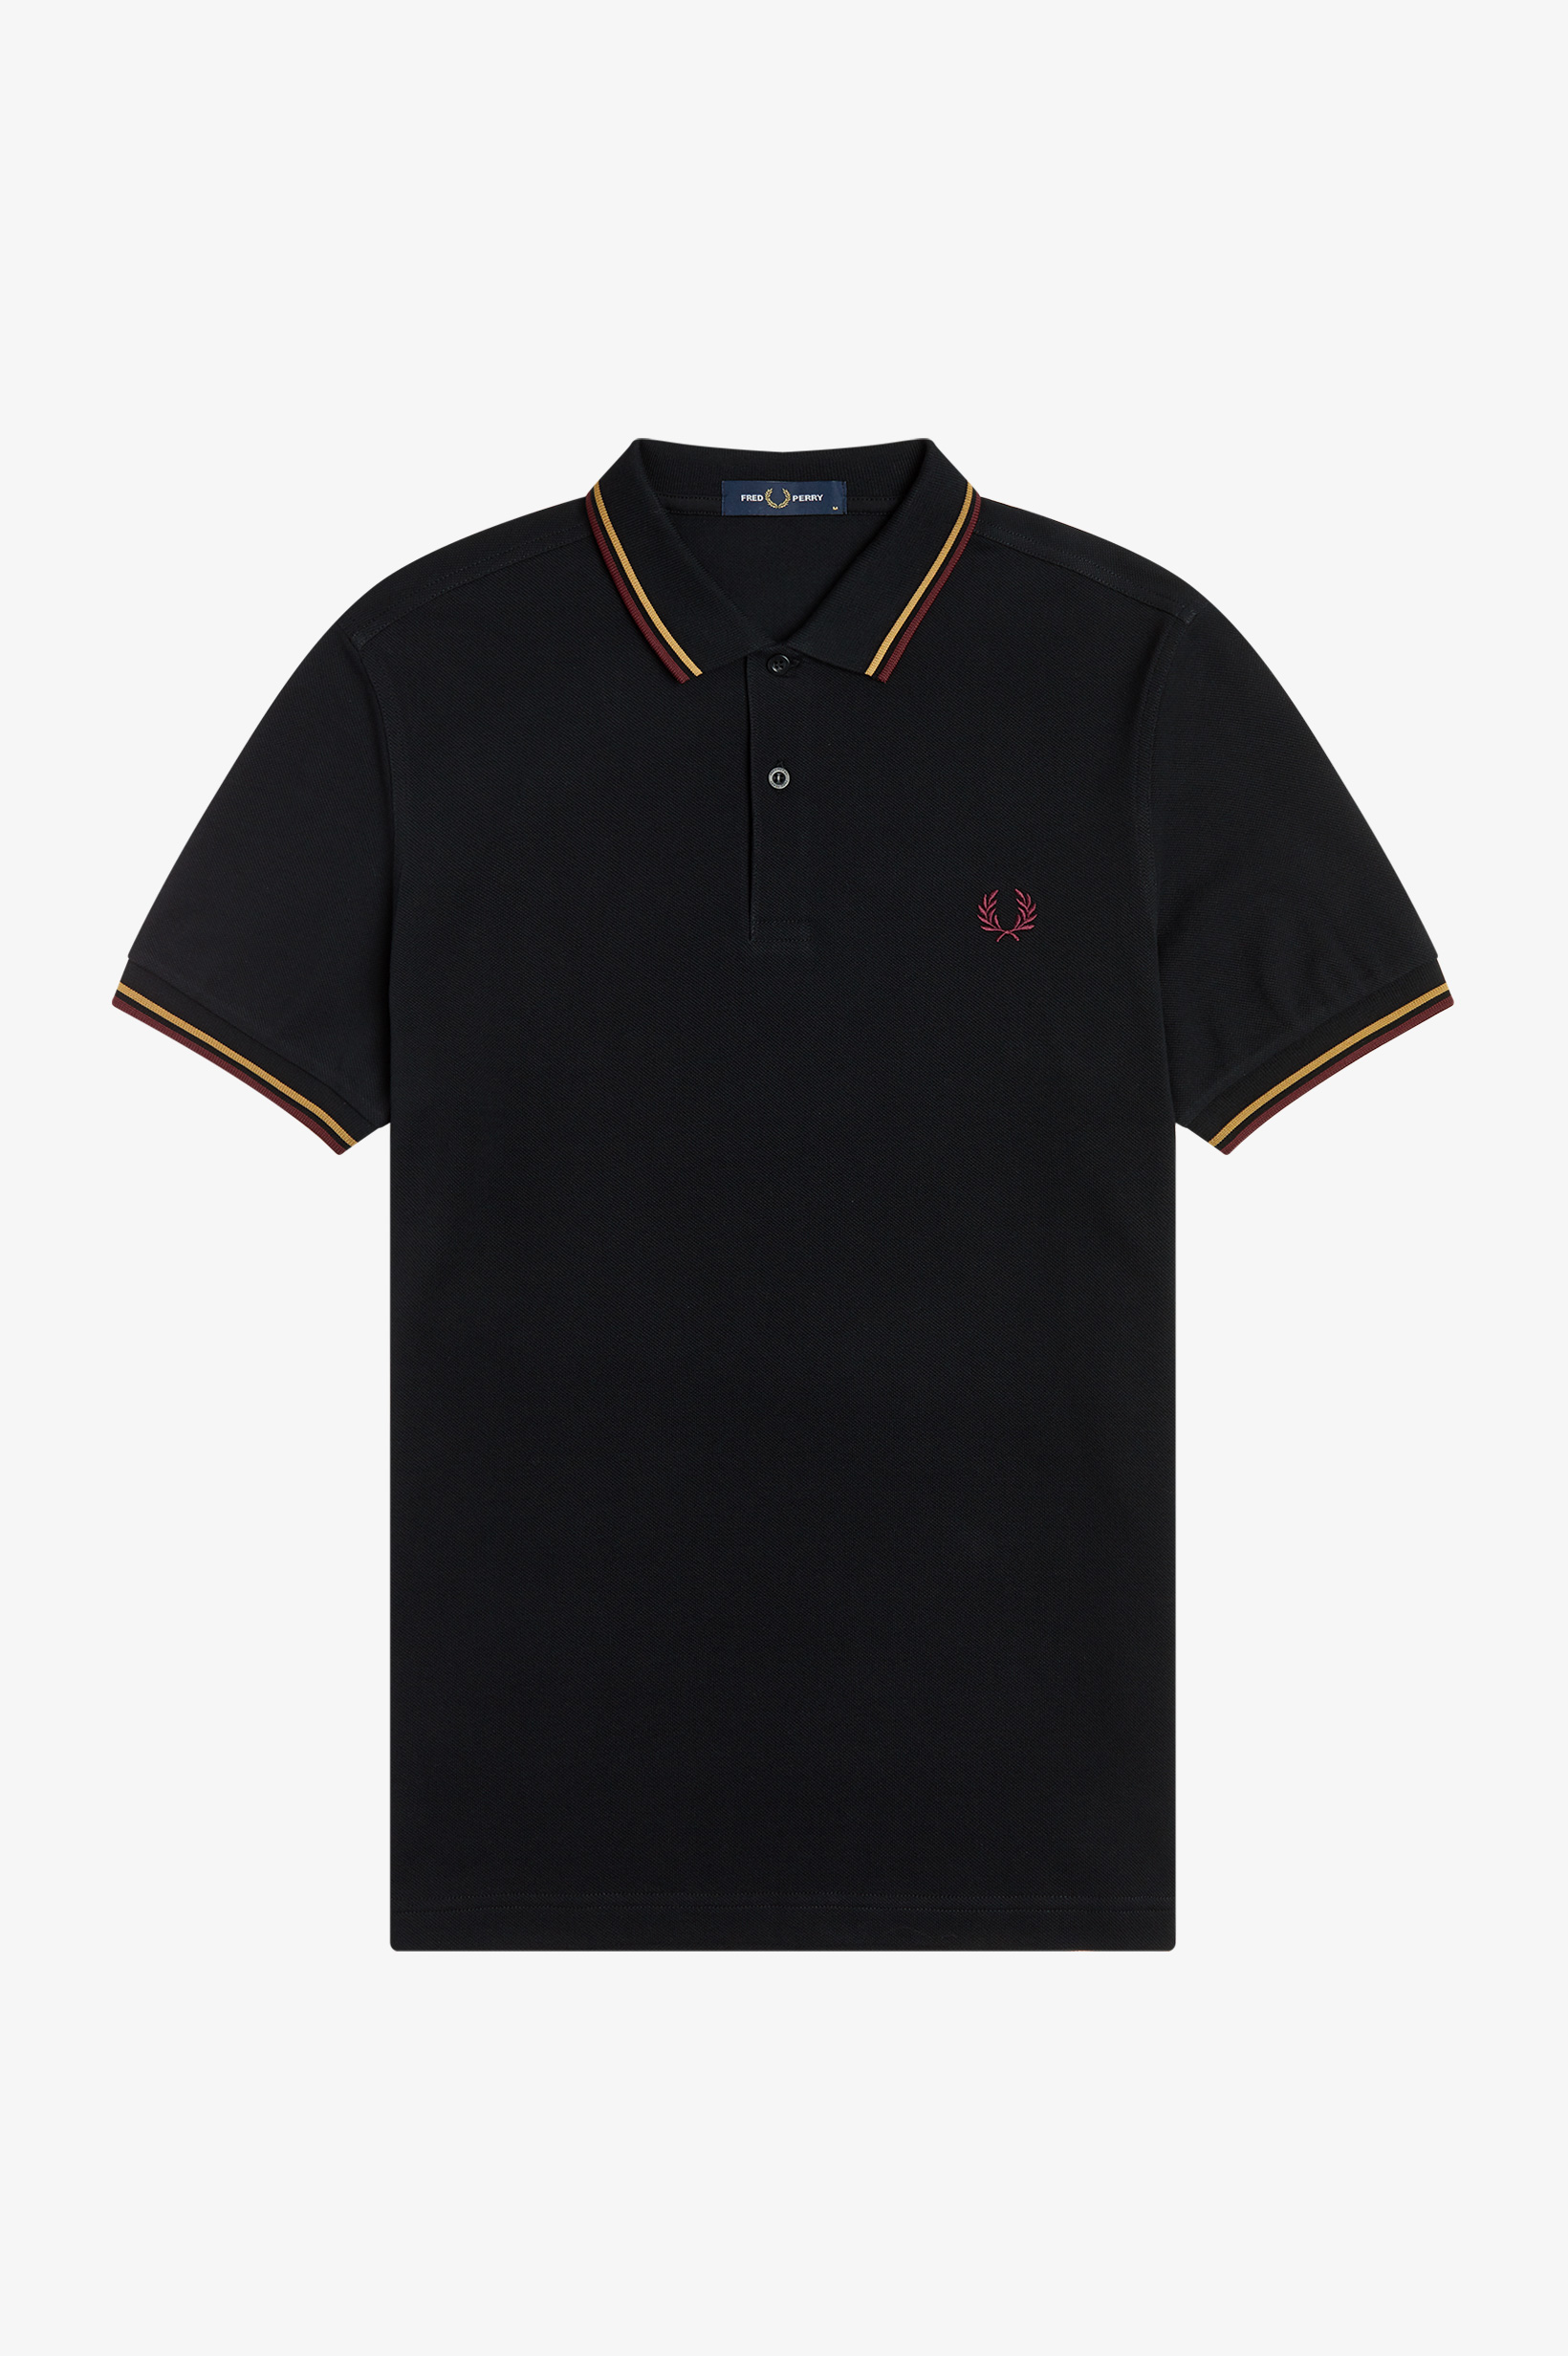 Fred Perry - TWIN TIPPED POLO SHIRT - Black/1964 Gold/ Aubergine